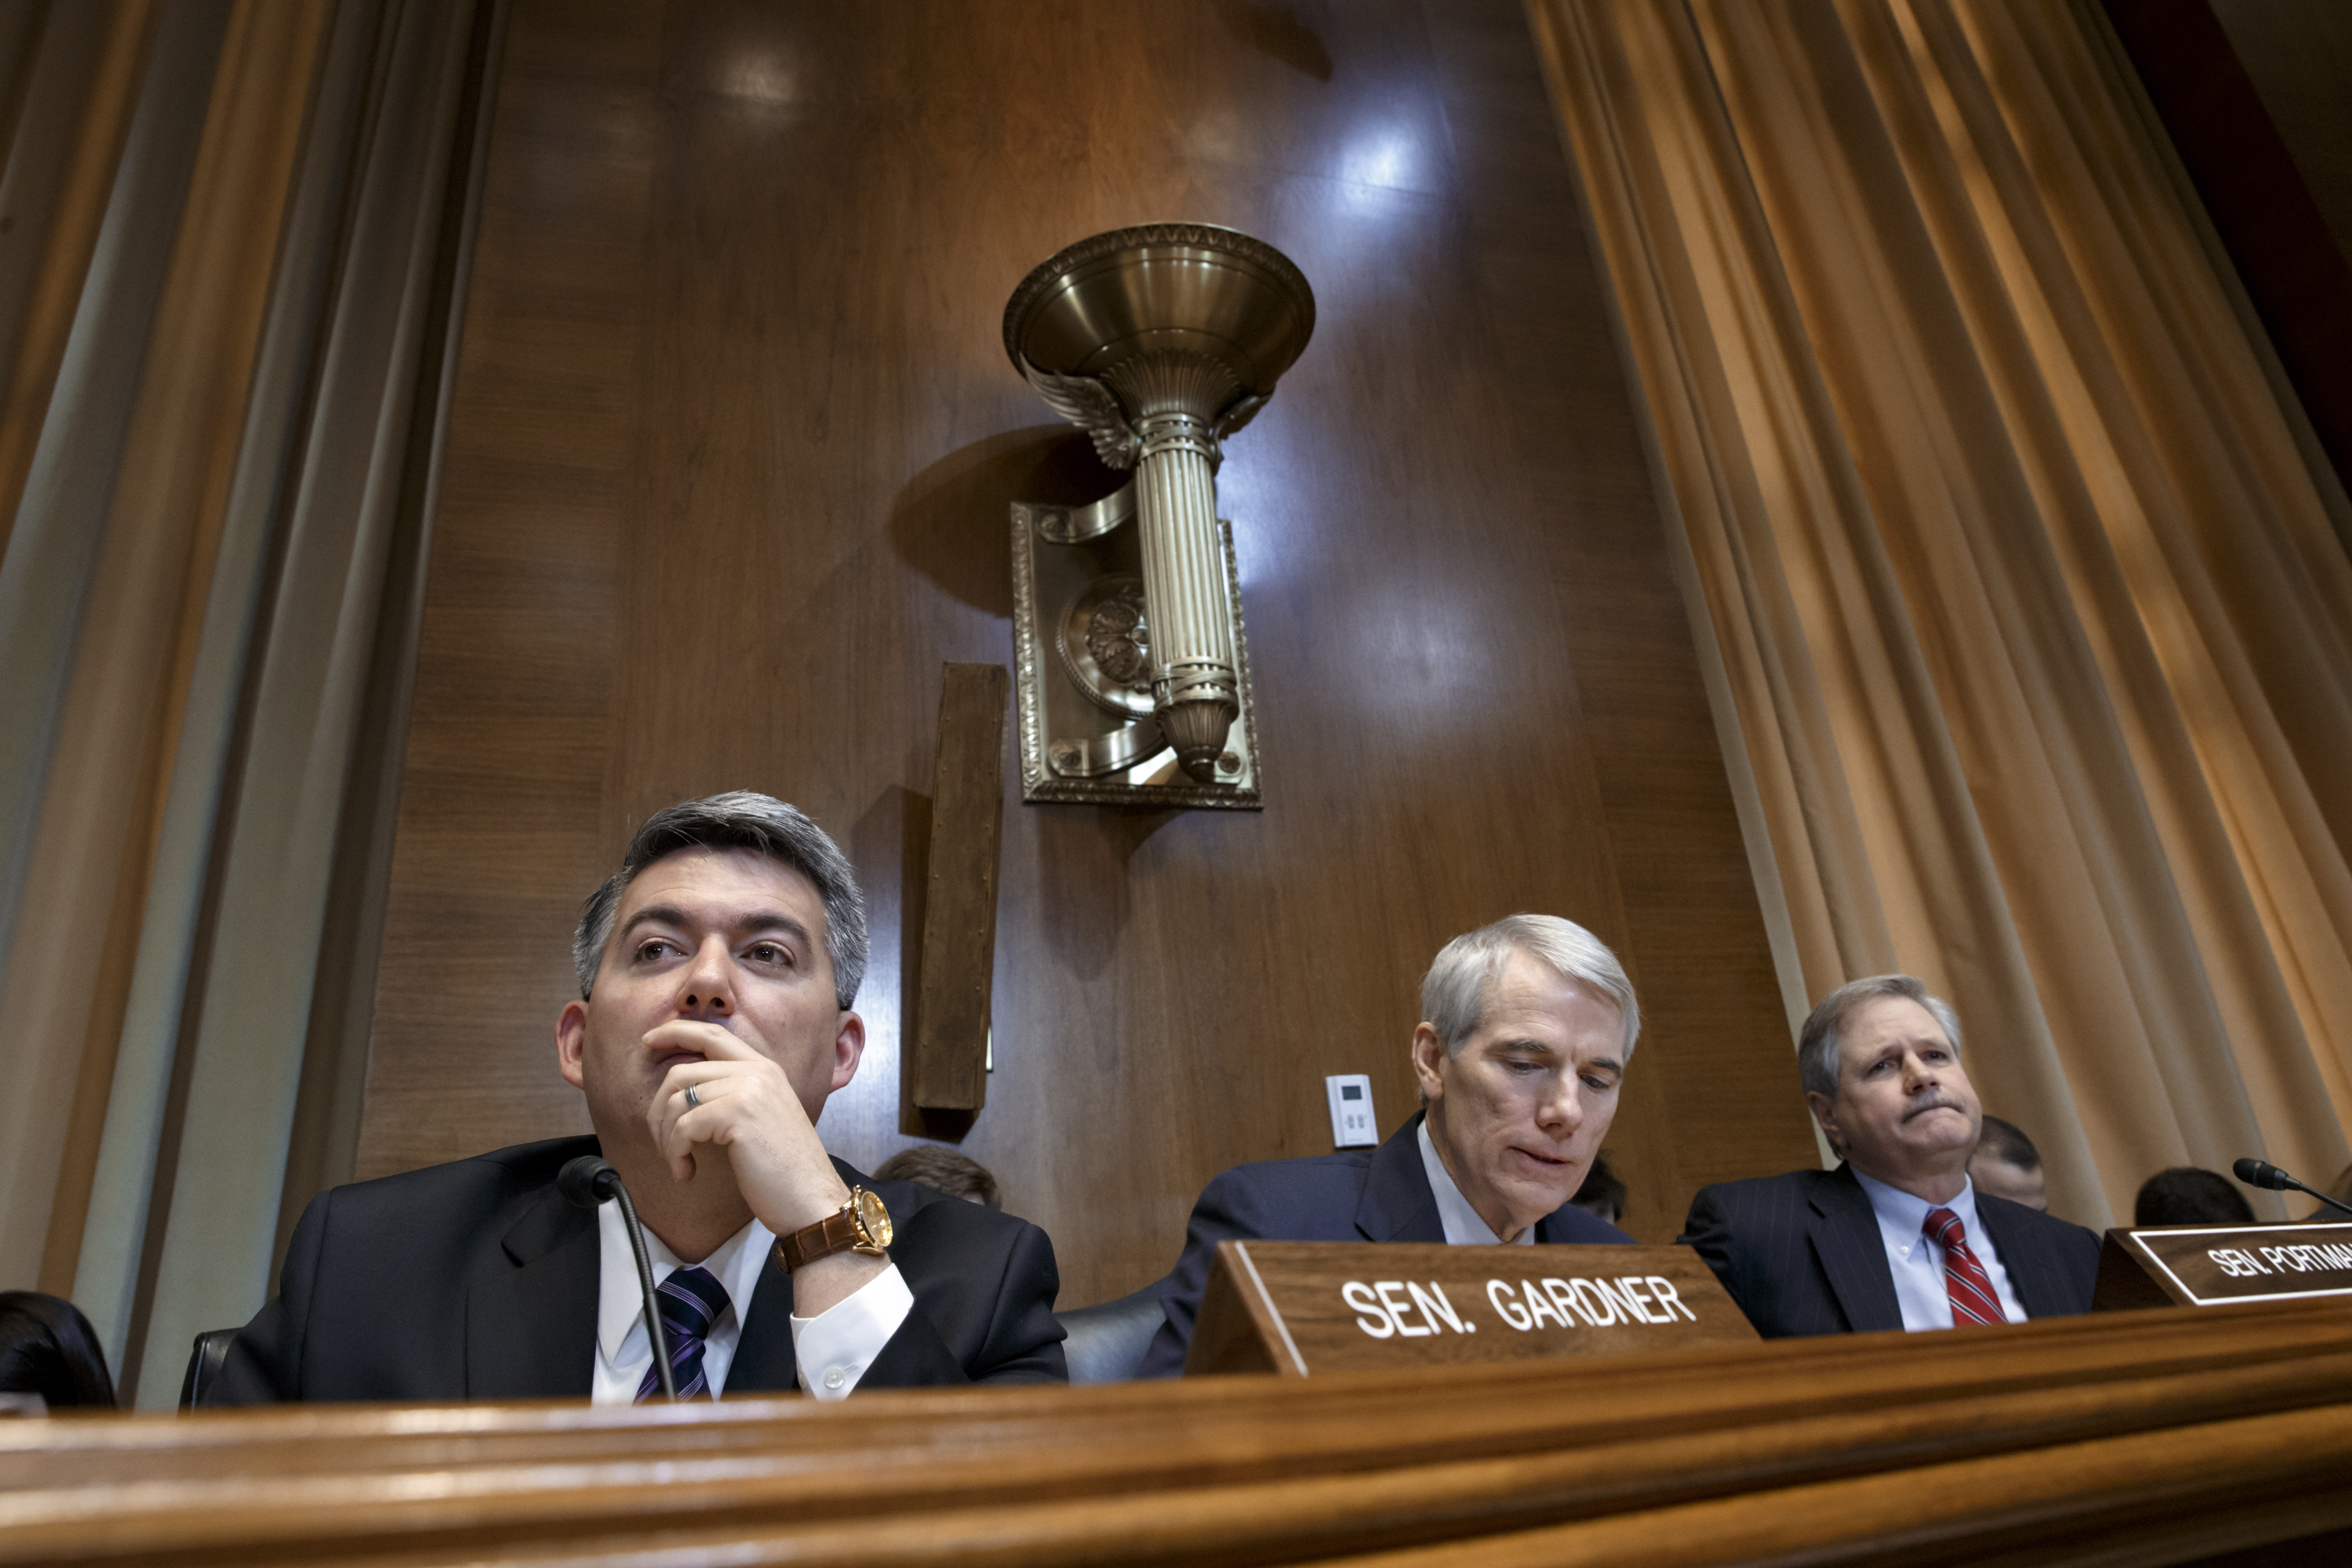 <p>From left, Senate Energy and Natural Resources Committee members Sen. Cory Gardner, R-Colo., Sen. Rob Portman, R-Ohio, and Sen. John Hoeven, R-N.D., listen to statements from members of the committee during the markup of the long-stalled Keystone XL pipeline, Jan. 8, 2015, on Capitol Hill in Washington. </p>